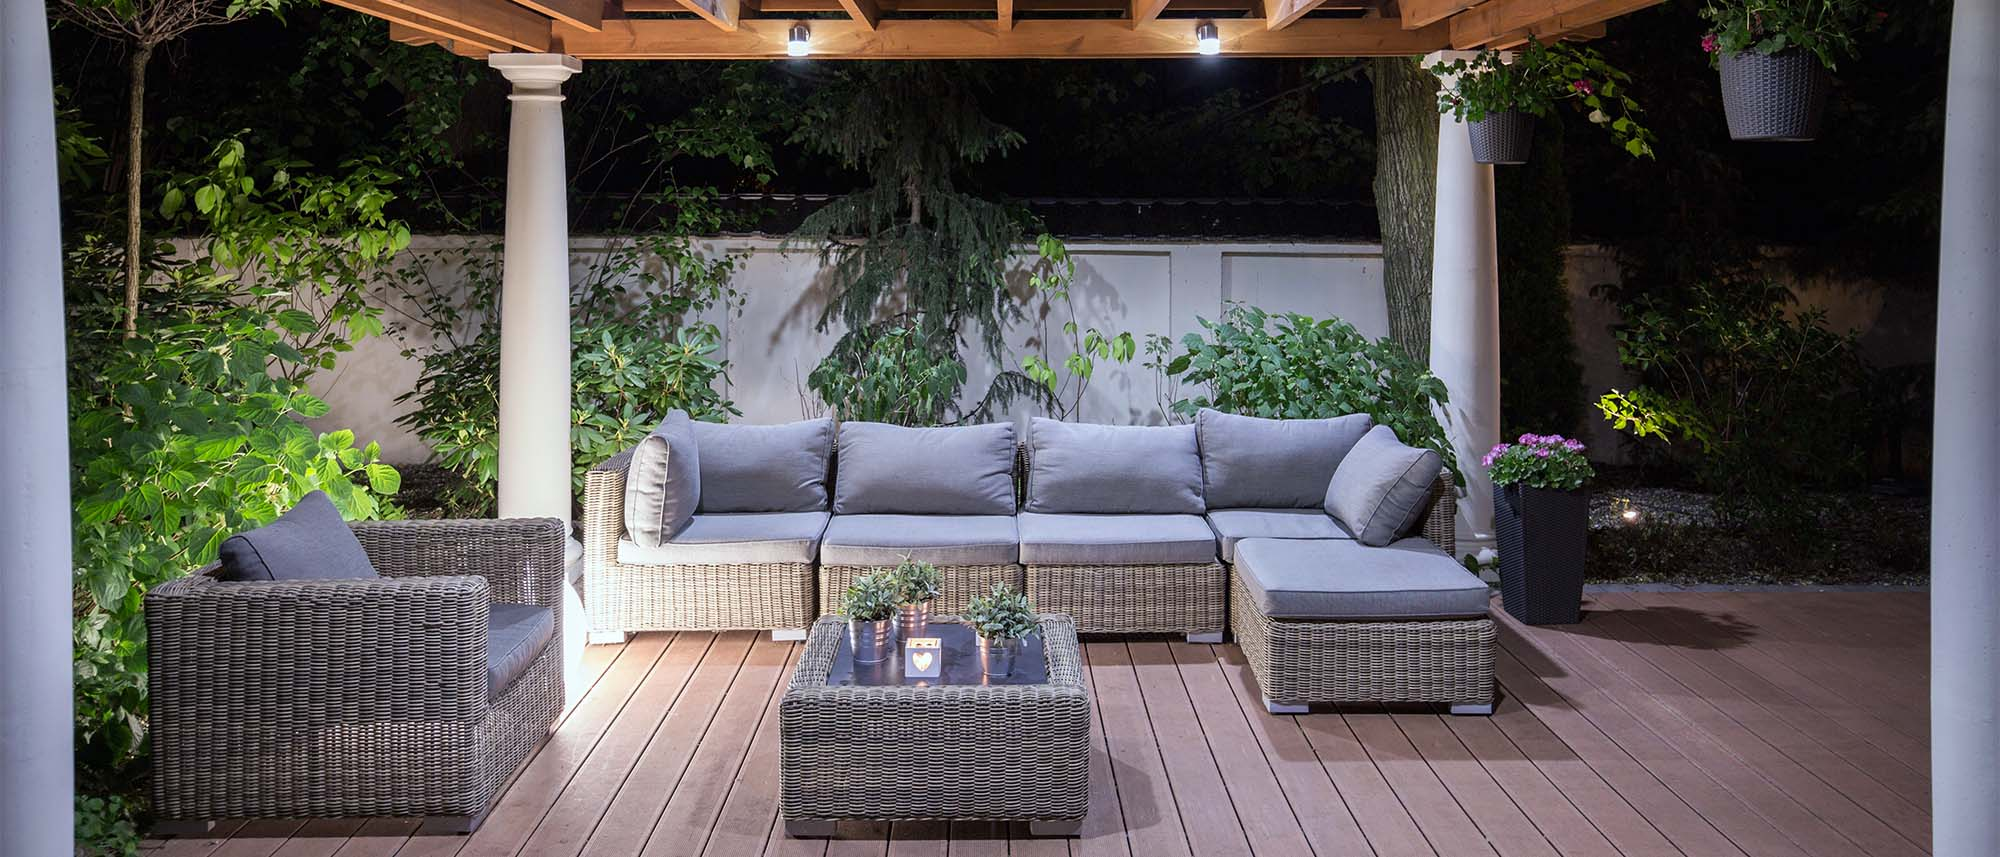 custom trex deck with pergola and lighting gray wicker furniture